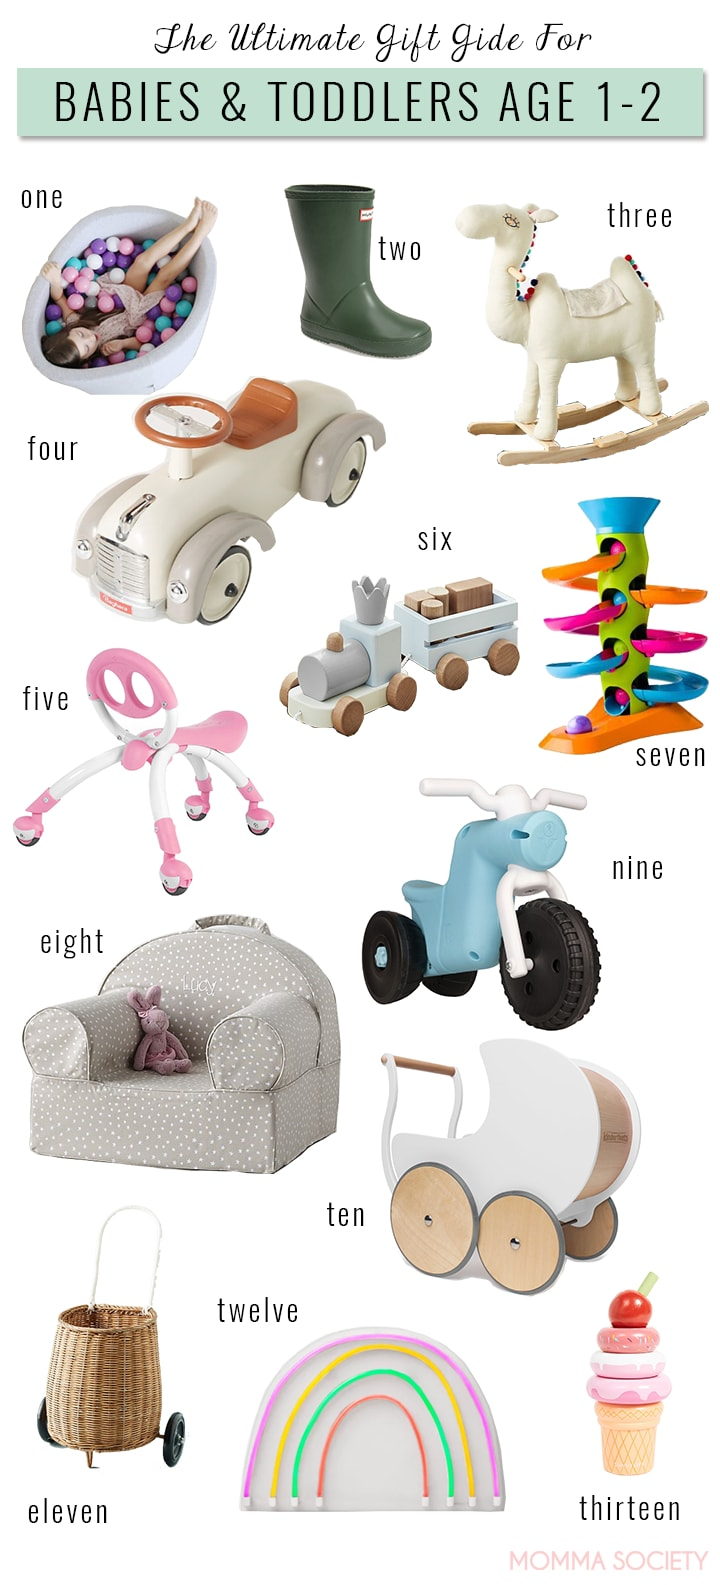 The Best Holiday Gifts for Babies and Toddlers Age 1-2.jpg